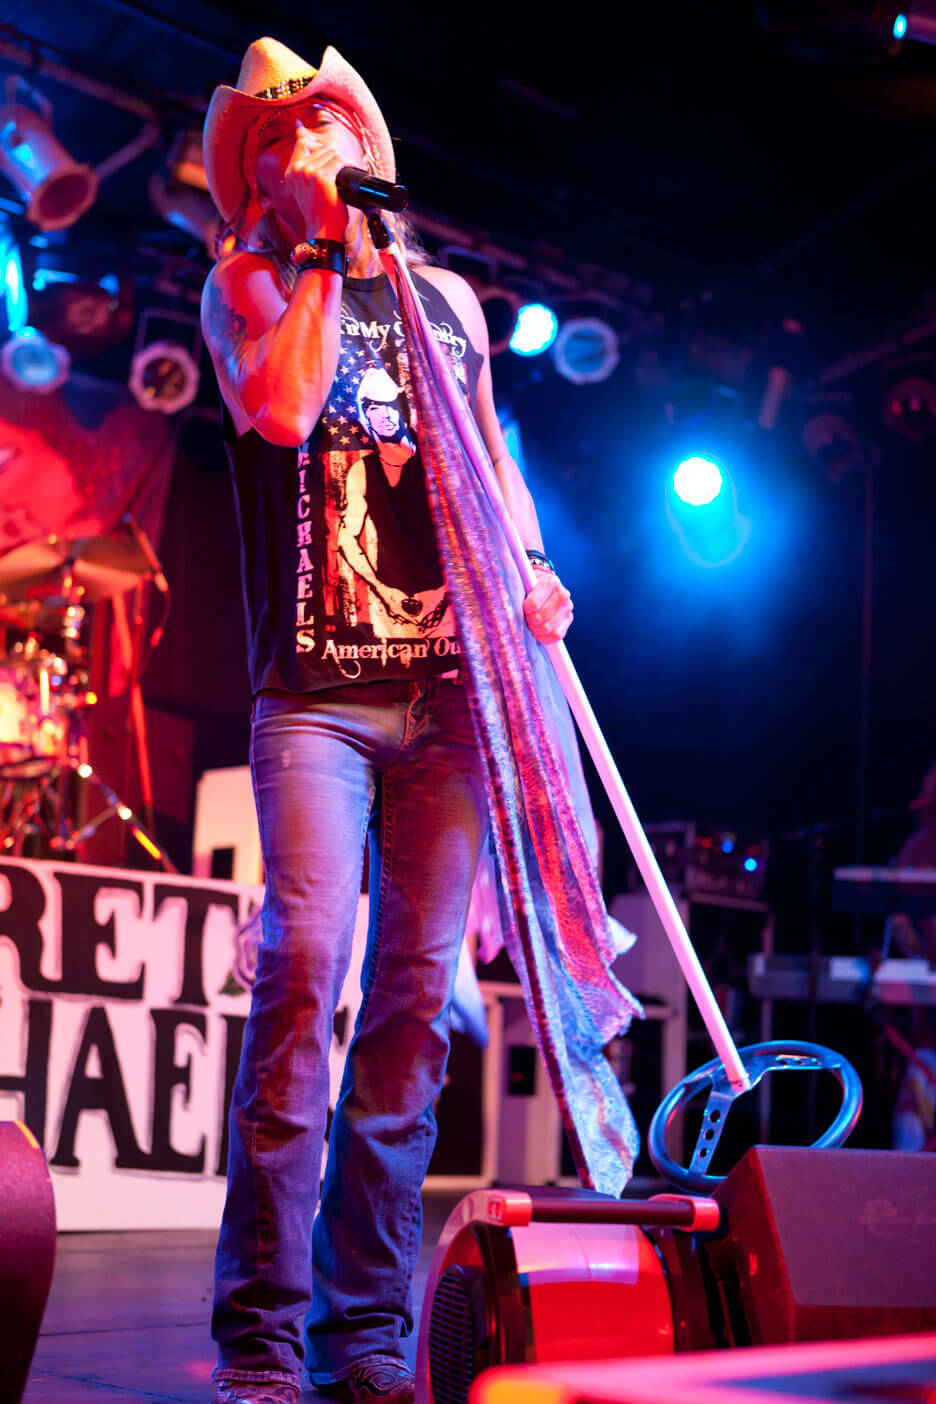 Think Tank PR Marketing Design Bret Michaels concert commercial photography